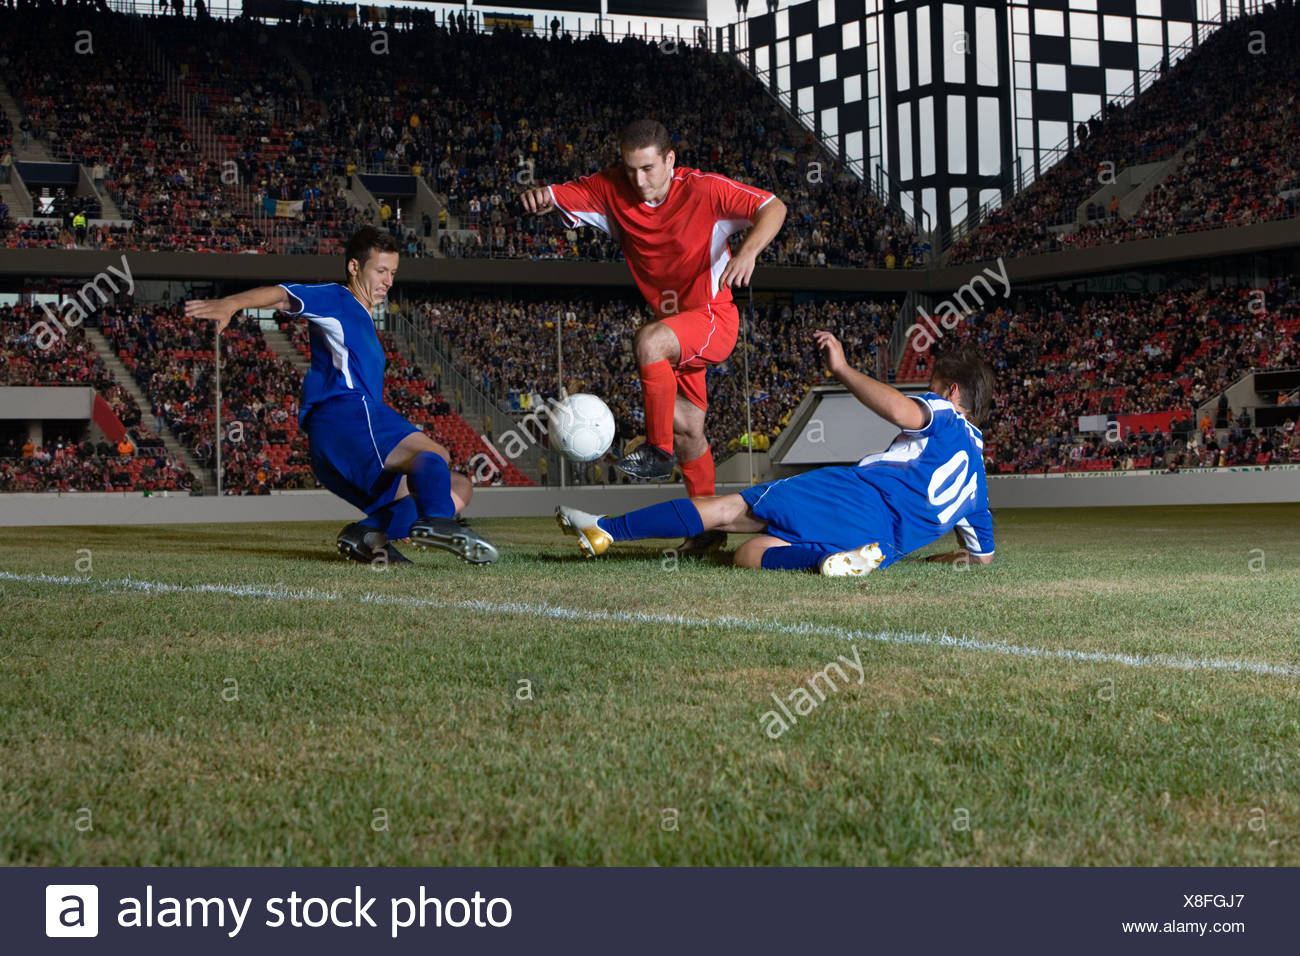 Opposite players tackling footballer - Stock Image